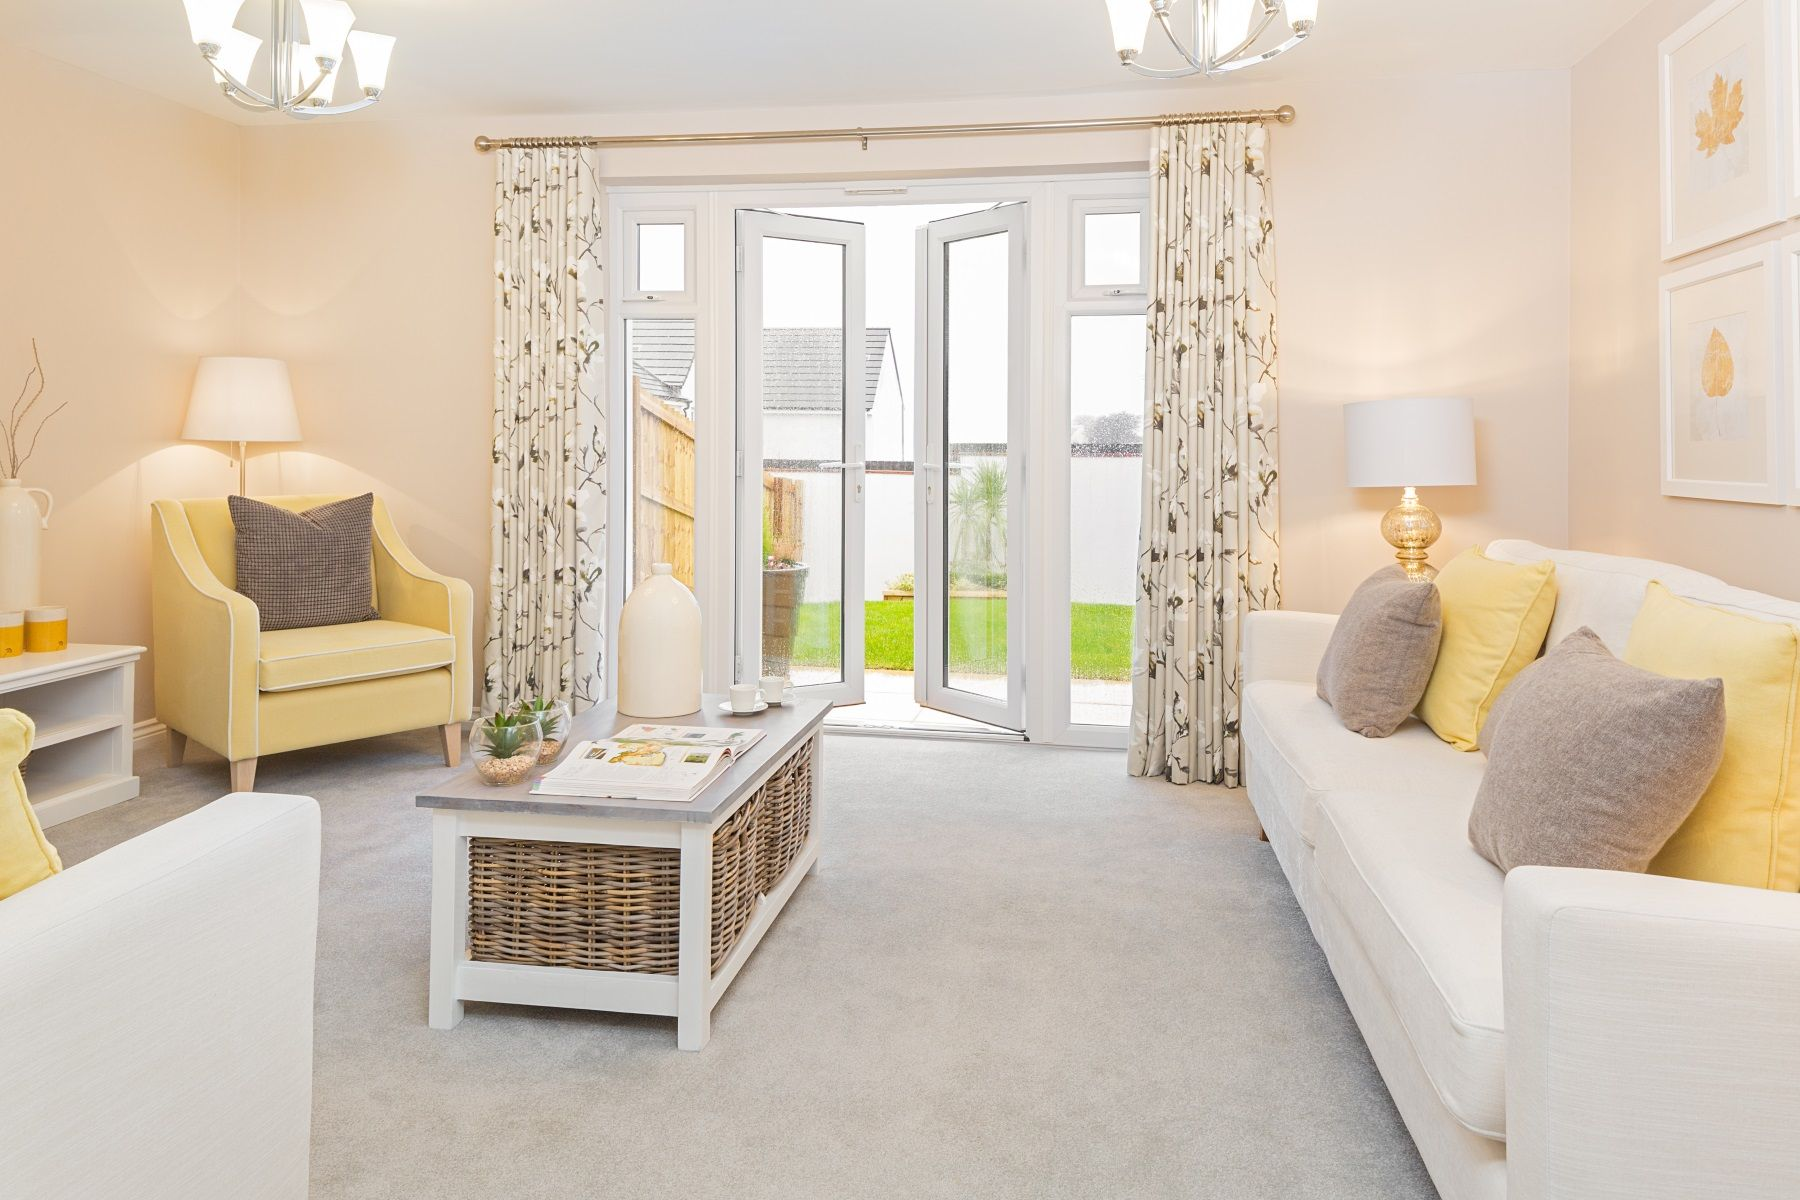 TW Exeter - Cranbrook - Flatford example living room 2